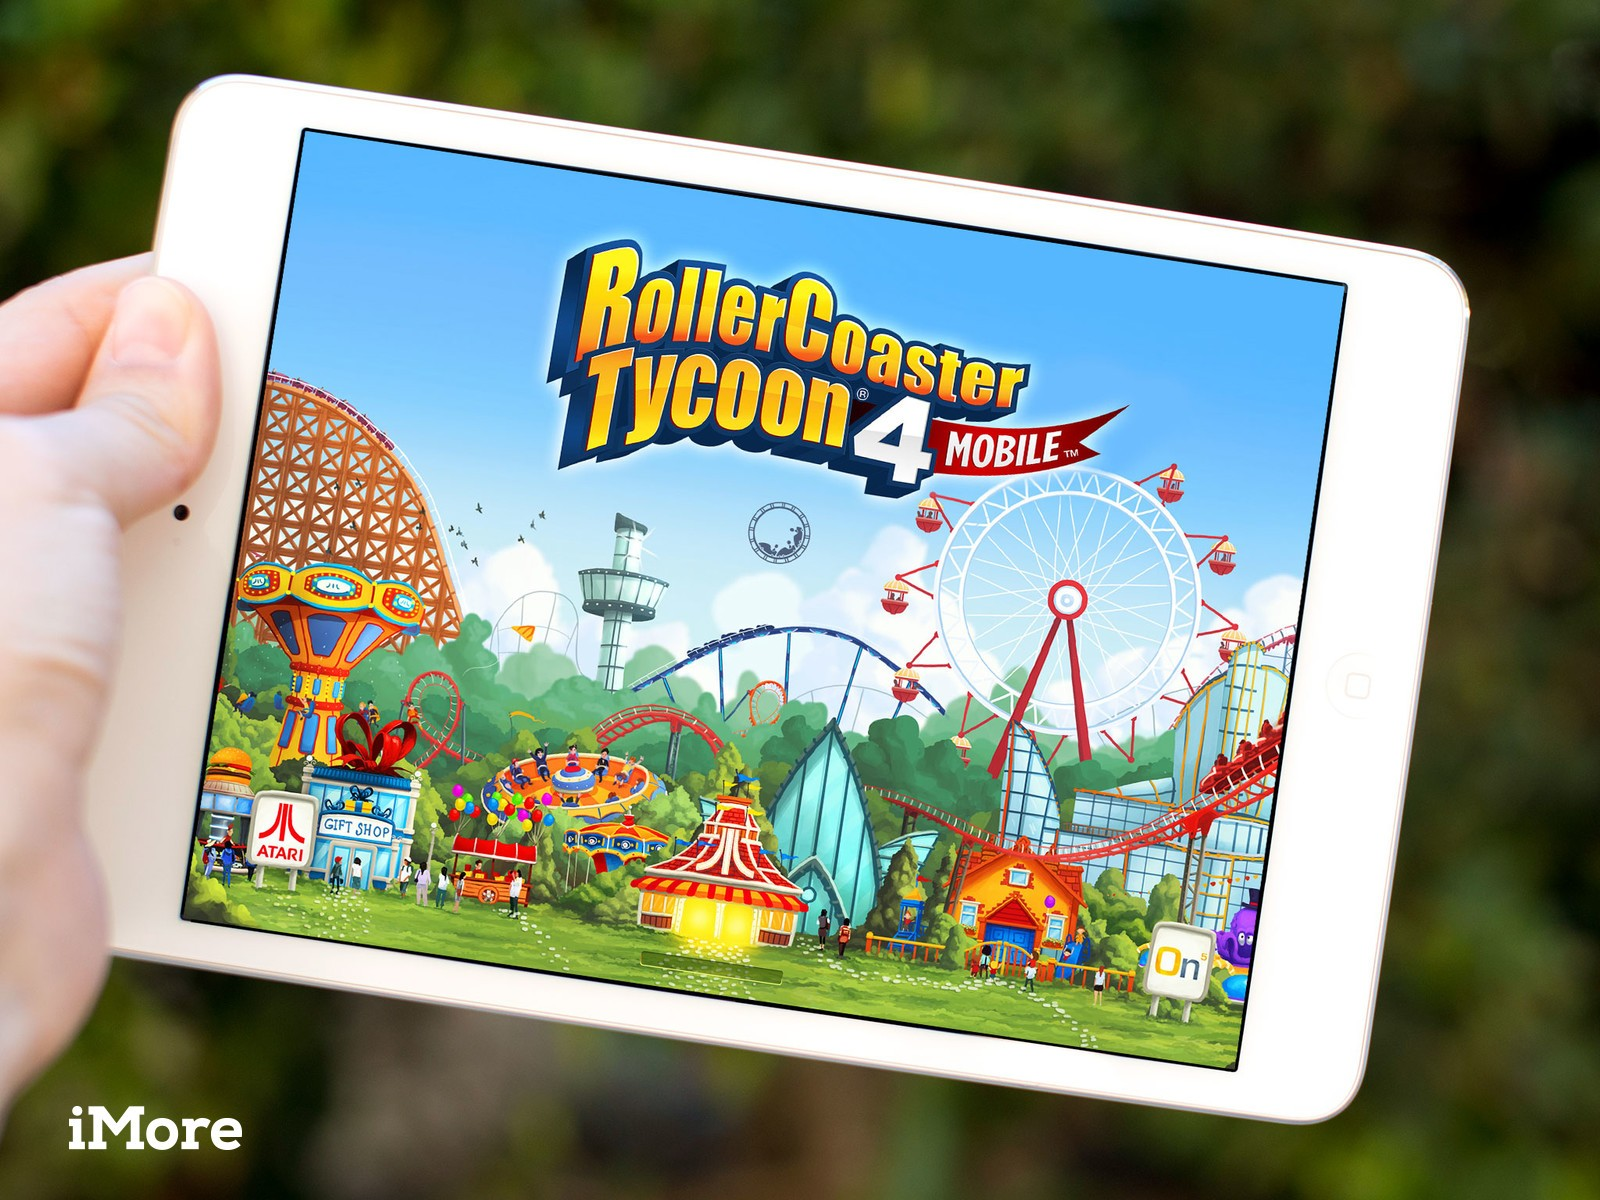 Roller Coaster Tycoon 4: Top 10 tips, hints, and cheats you need to know!